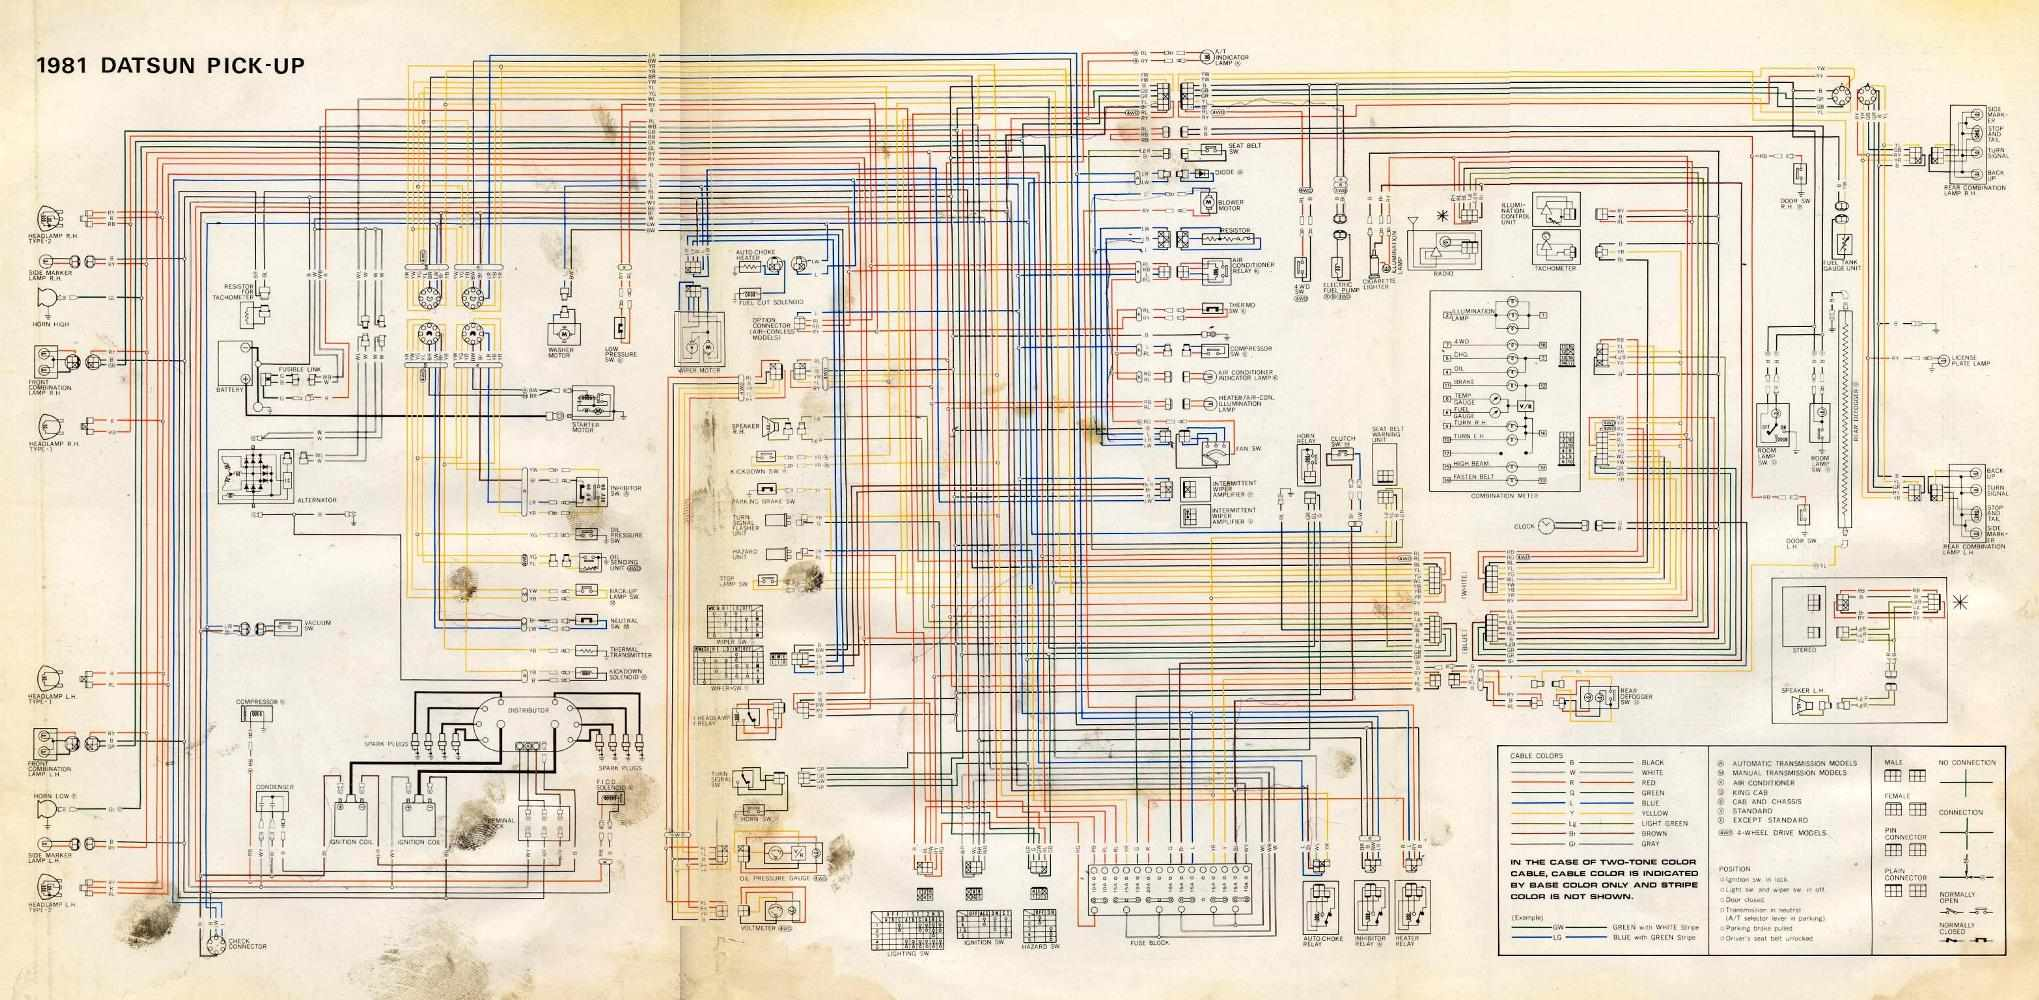 1977 Dodge Pickup Wiring Diagram Schematic Diagrams 1985 Sportsman Electrical